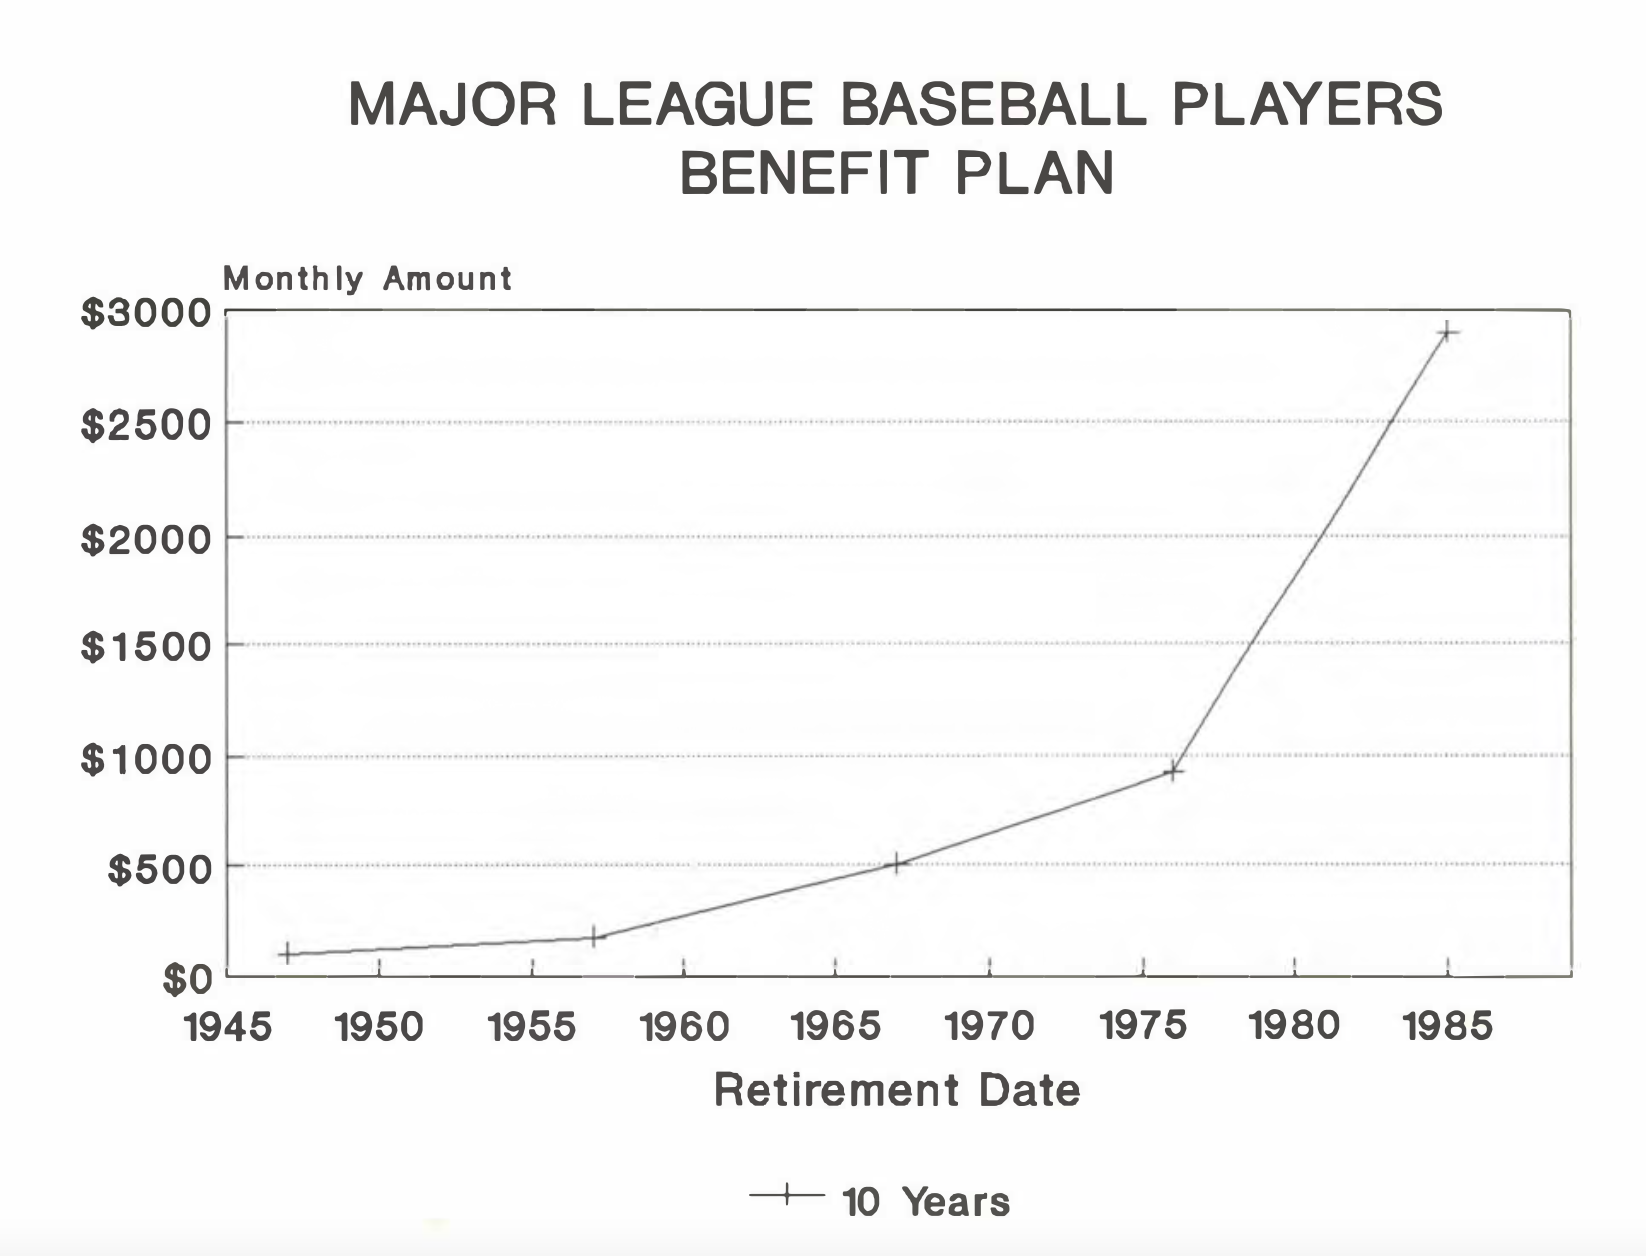 Table 1: MLB Players Benefit Plan (CHARLIE BEVIS)